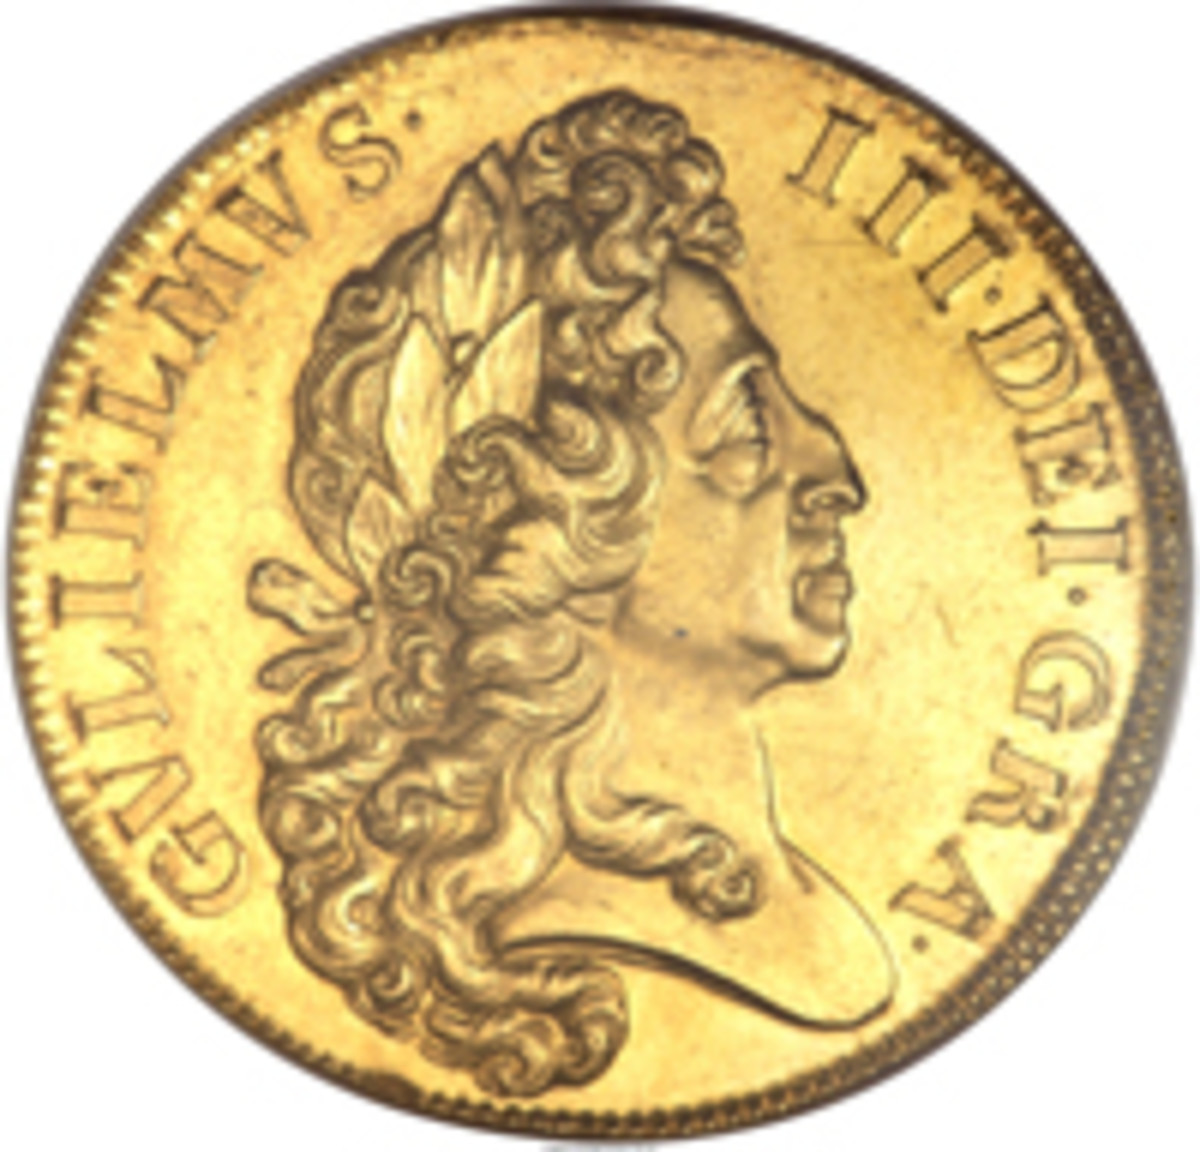 William III 5 guineas of 1701, KM-508, S-3456, which made an easy $188,000 in MS-64 NGC. (Image courtesy and © www.ha.com)